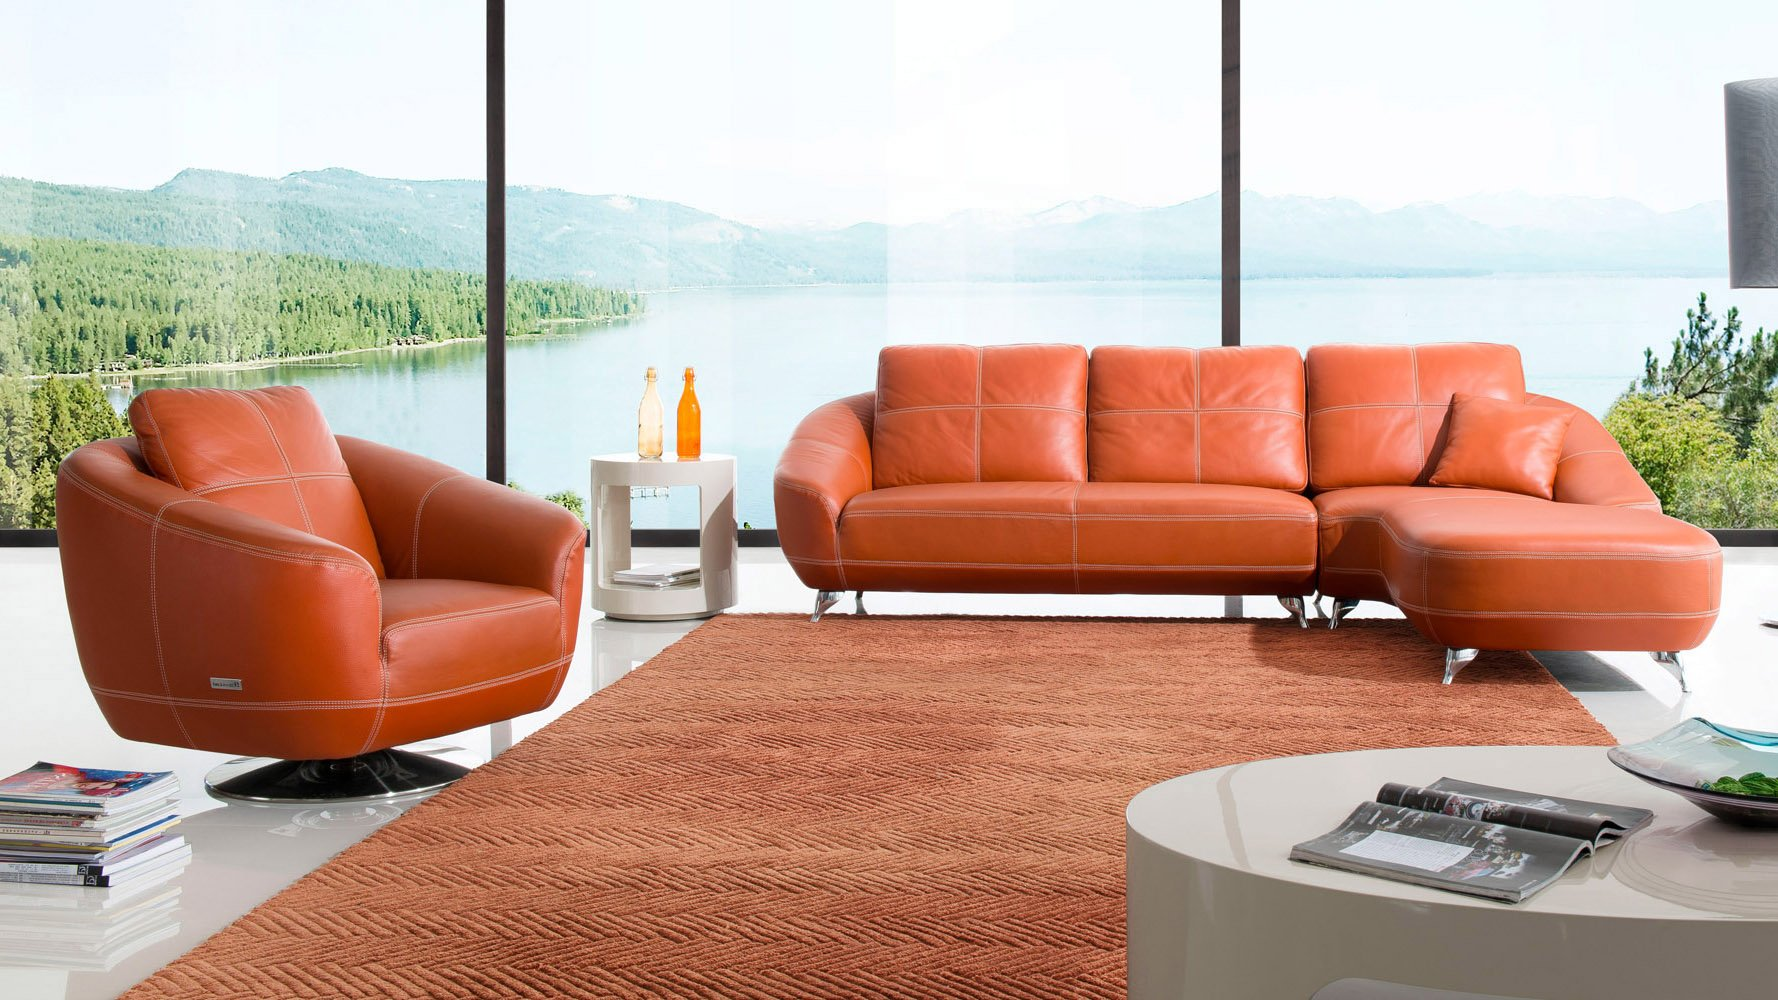 Chaise orange dc america fantasy chaise lounge chairs set for Burnt orange chaise lounge